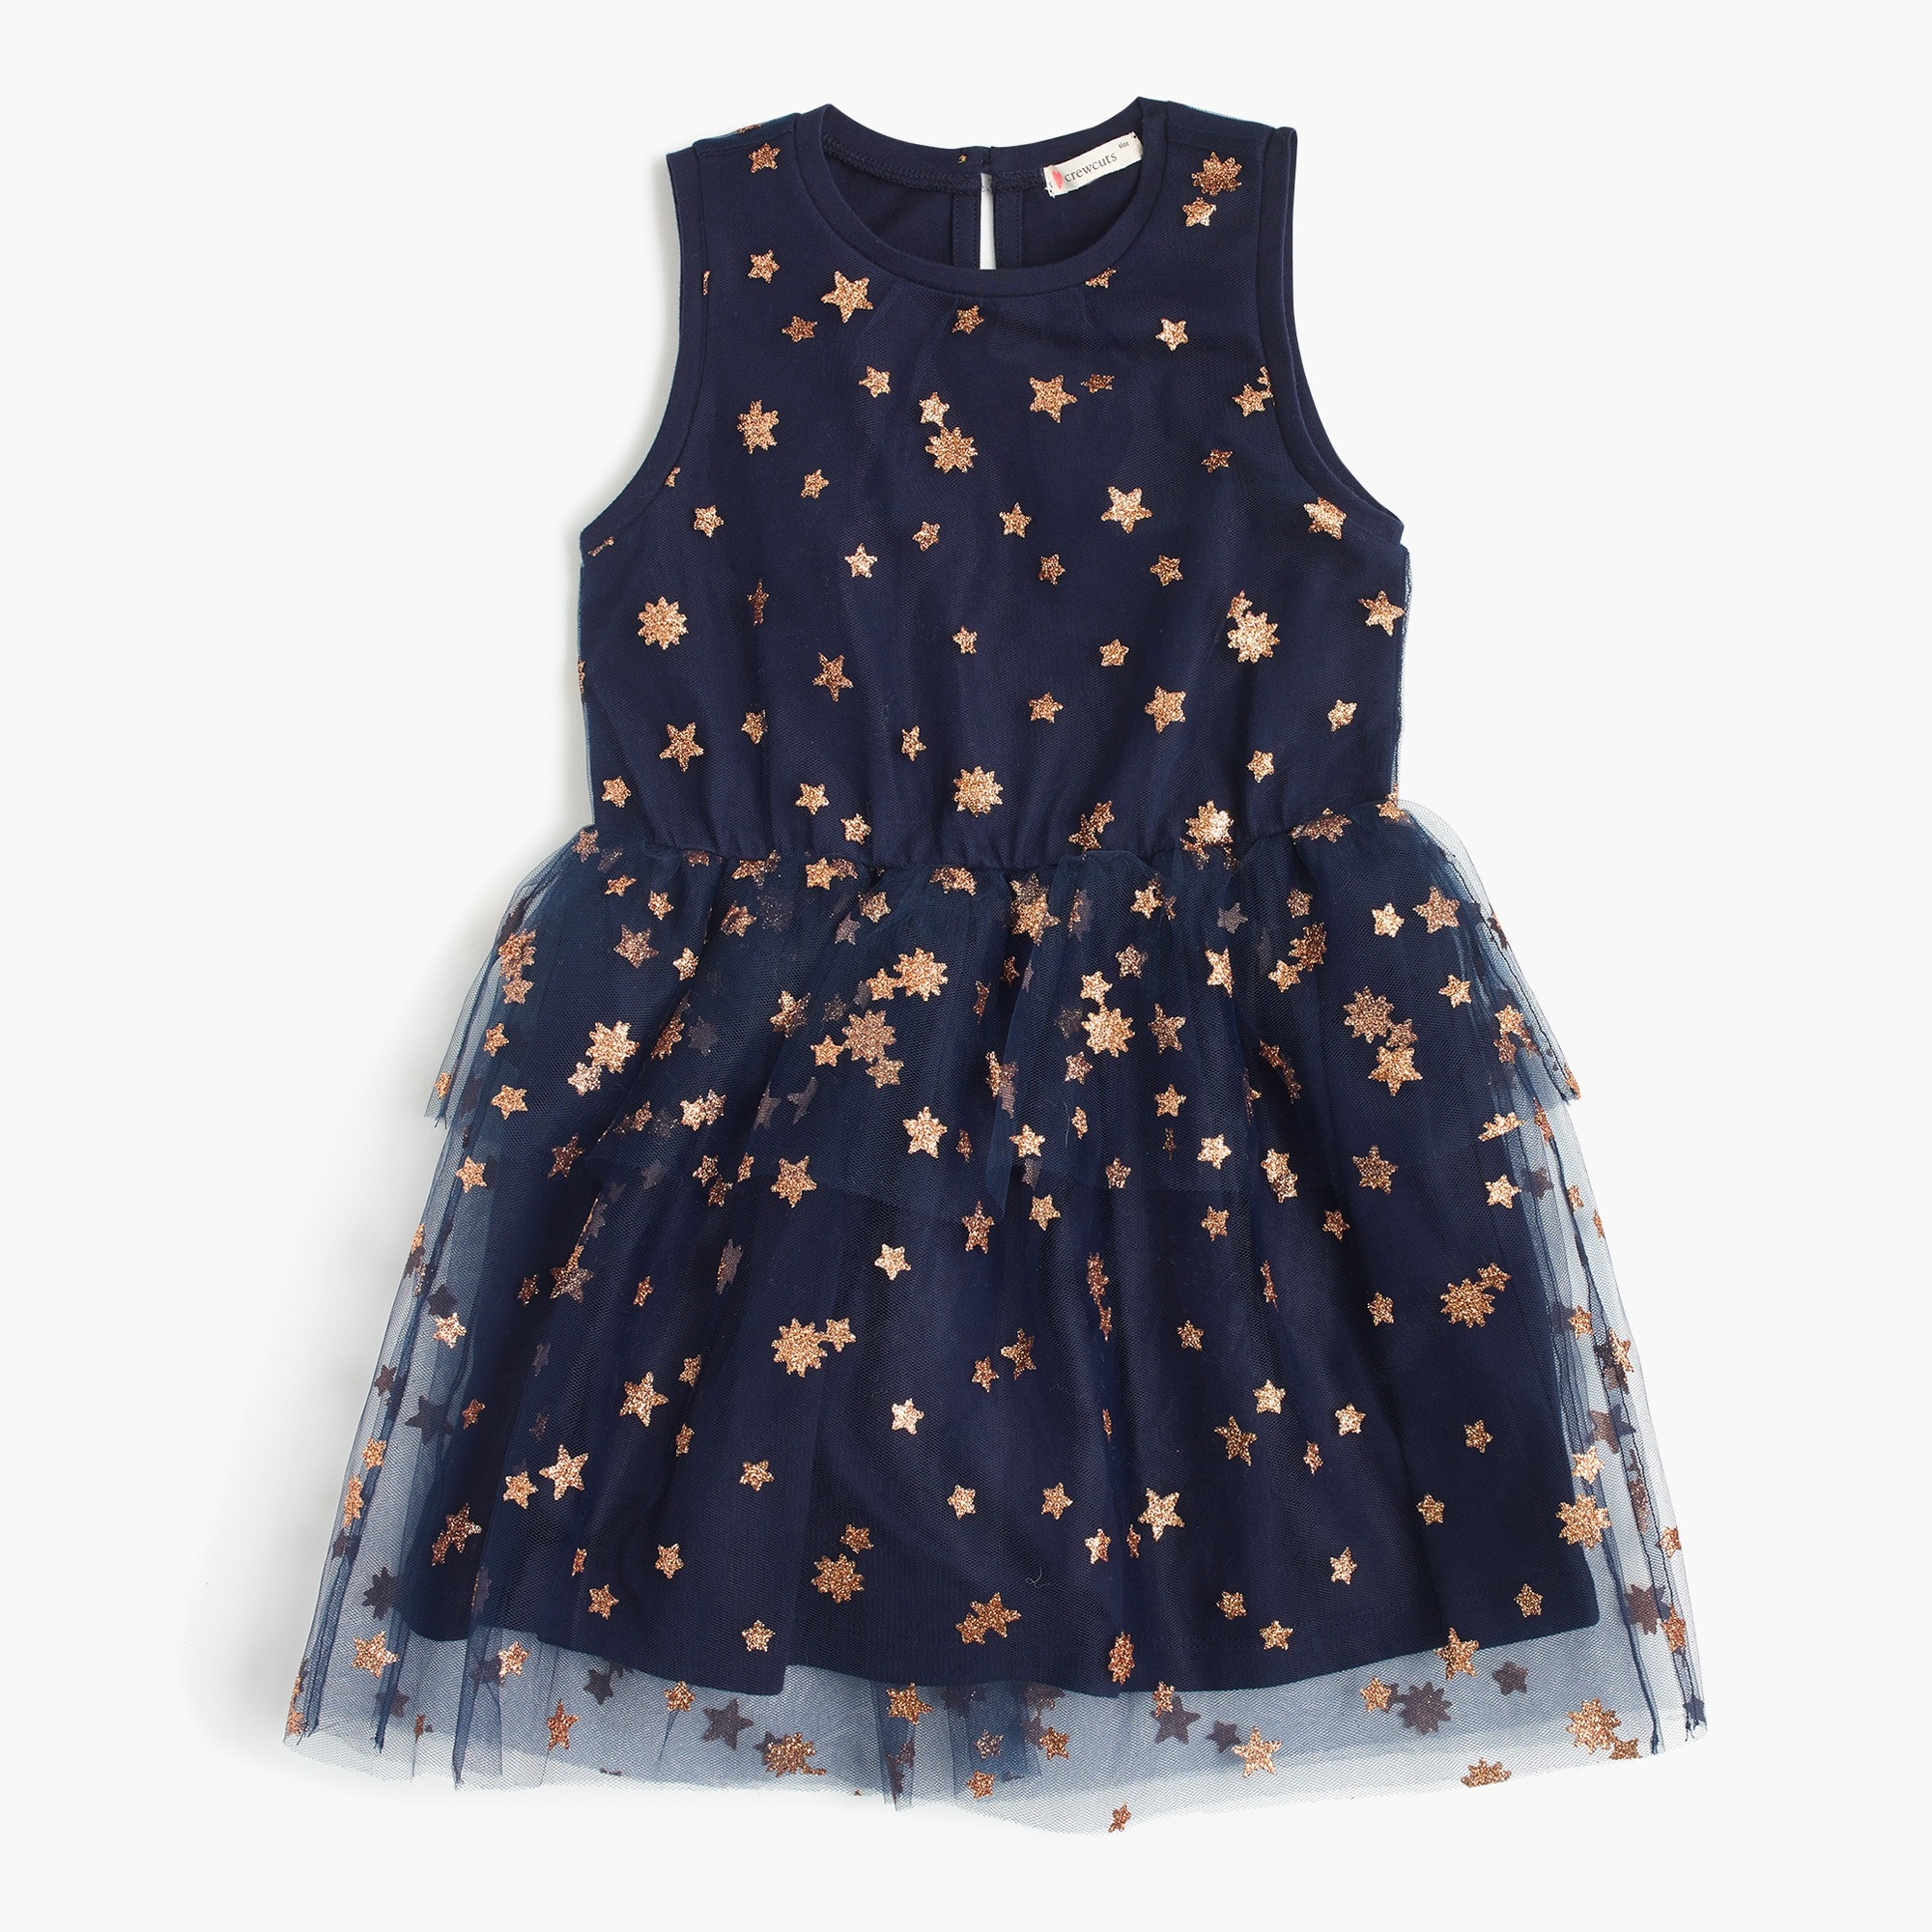 girls' tulle dress in stars and flowers : girl party & special occasion